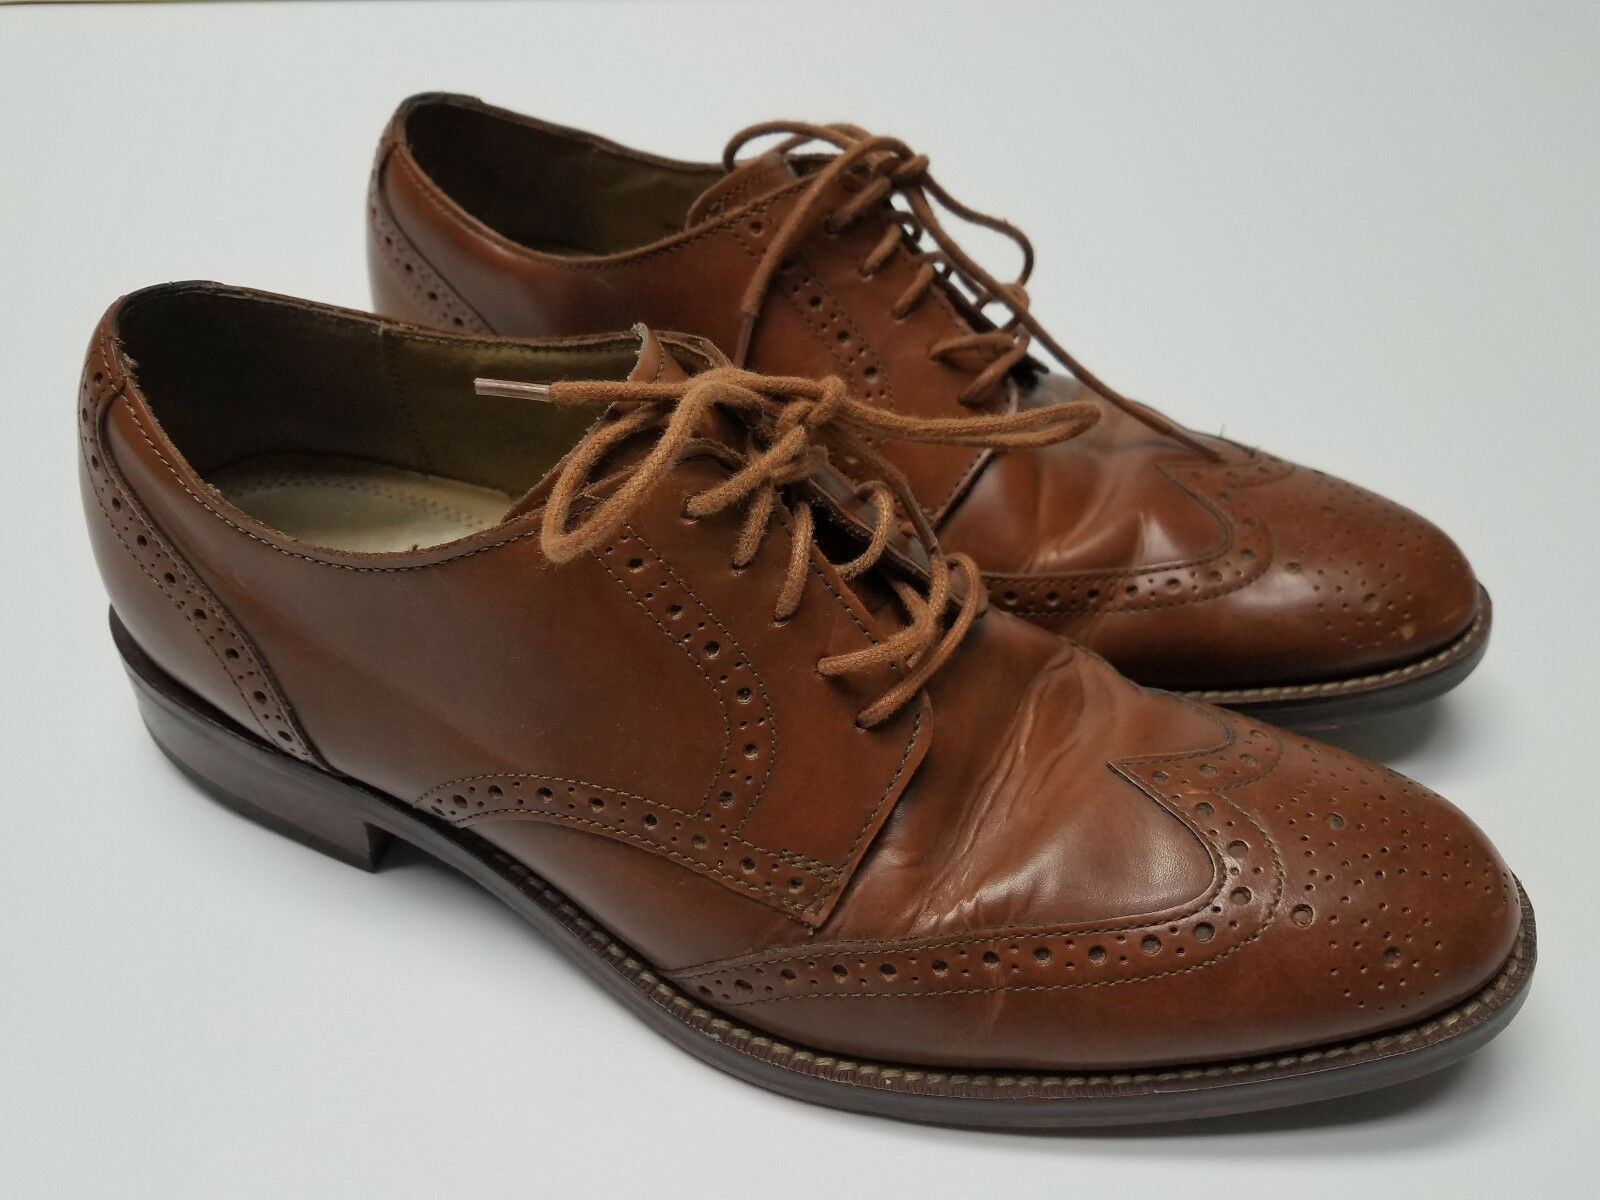 Cole Haan Grand OS Wingtip Scarpe Pelle Oxford Brogue marrone Taglia 9